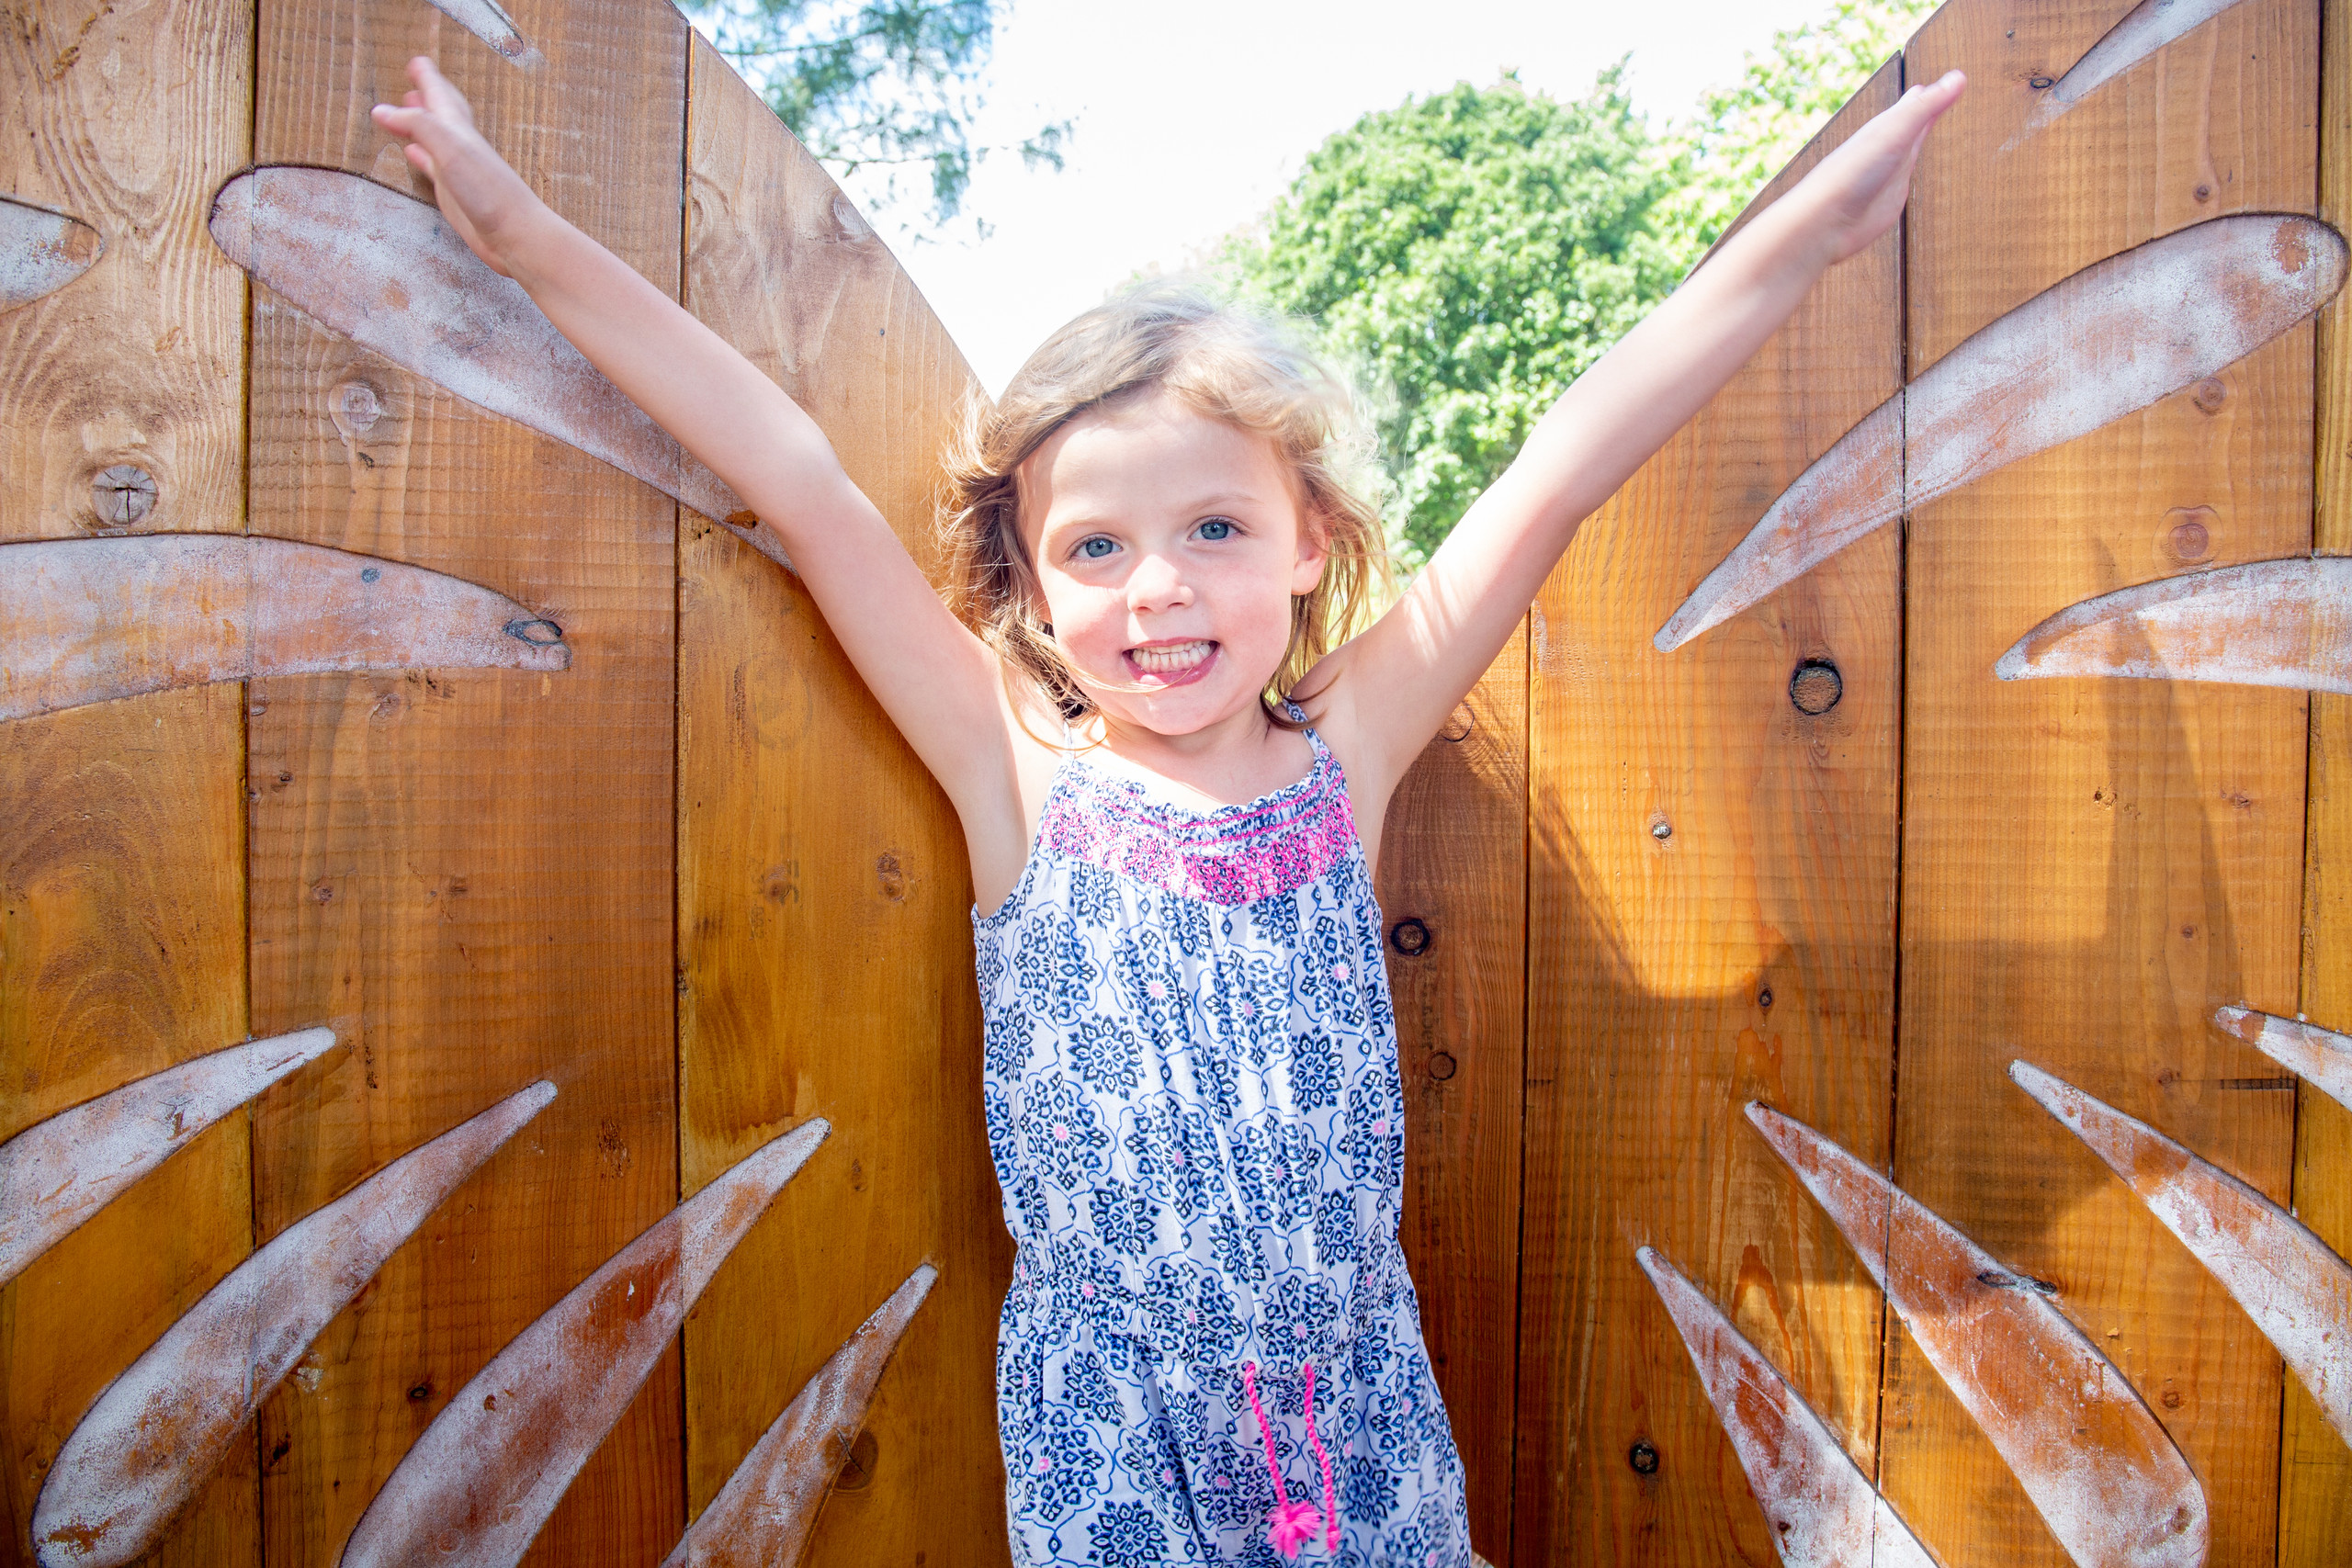 a happy girl stretches and poses in front of a butterfly sculpture for the photographer in a gower park